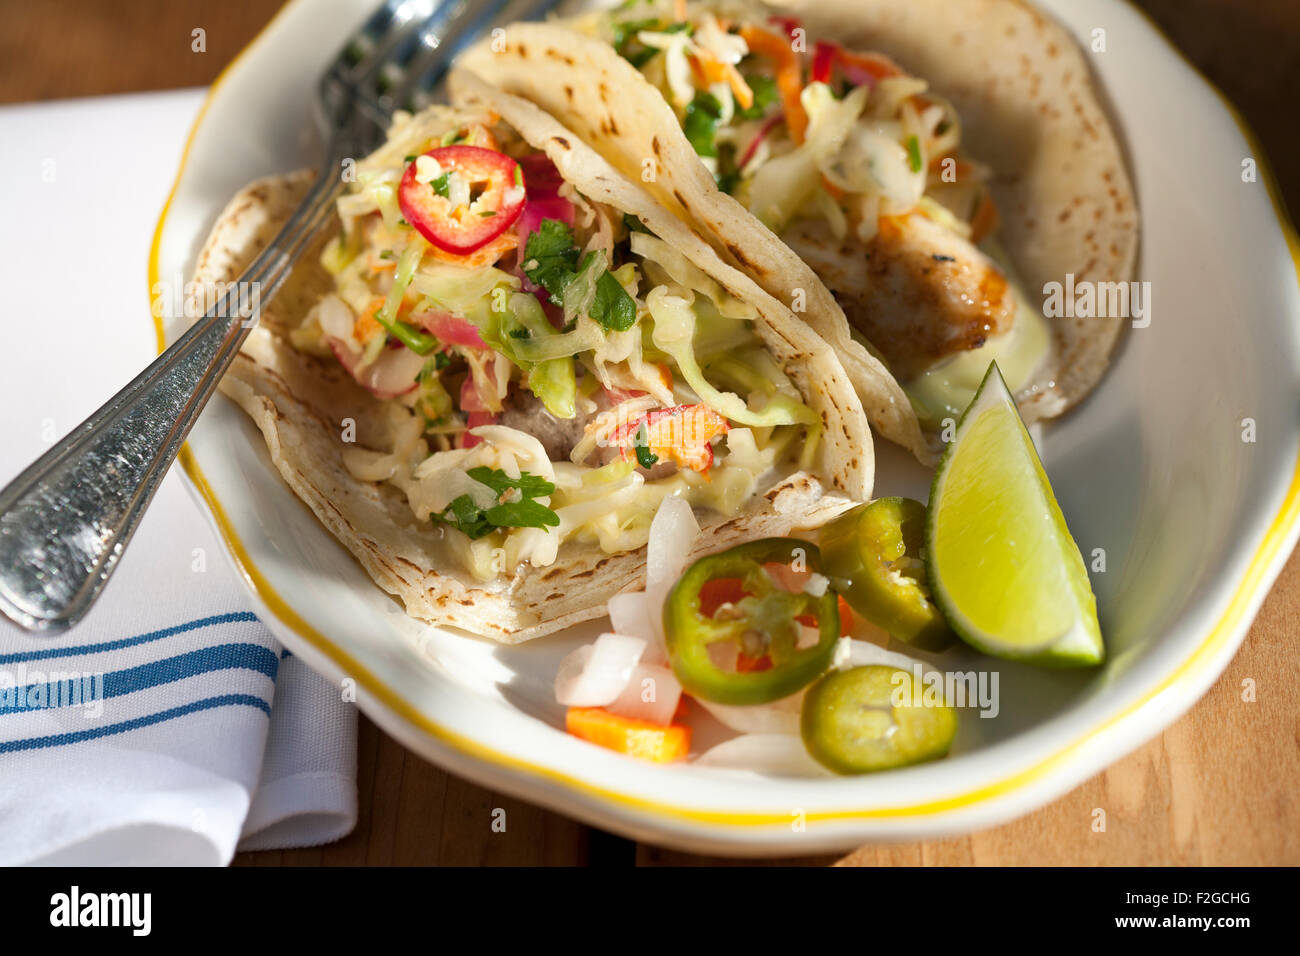 looking down at two fish tacos with spicy pickled cabbage, avocado and aioli on a plate with a fork and napkin - Stock Image